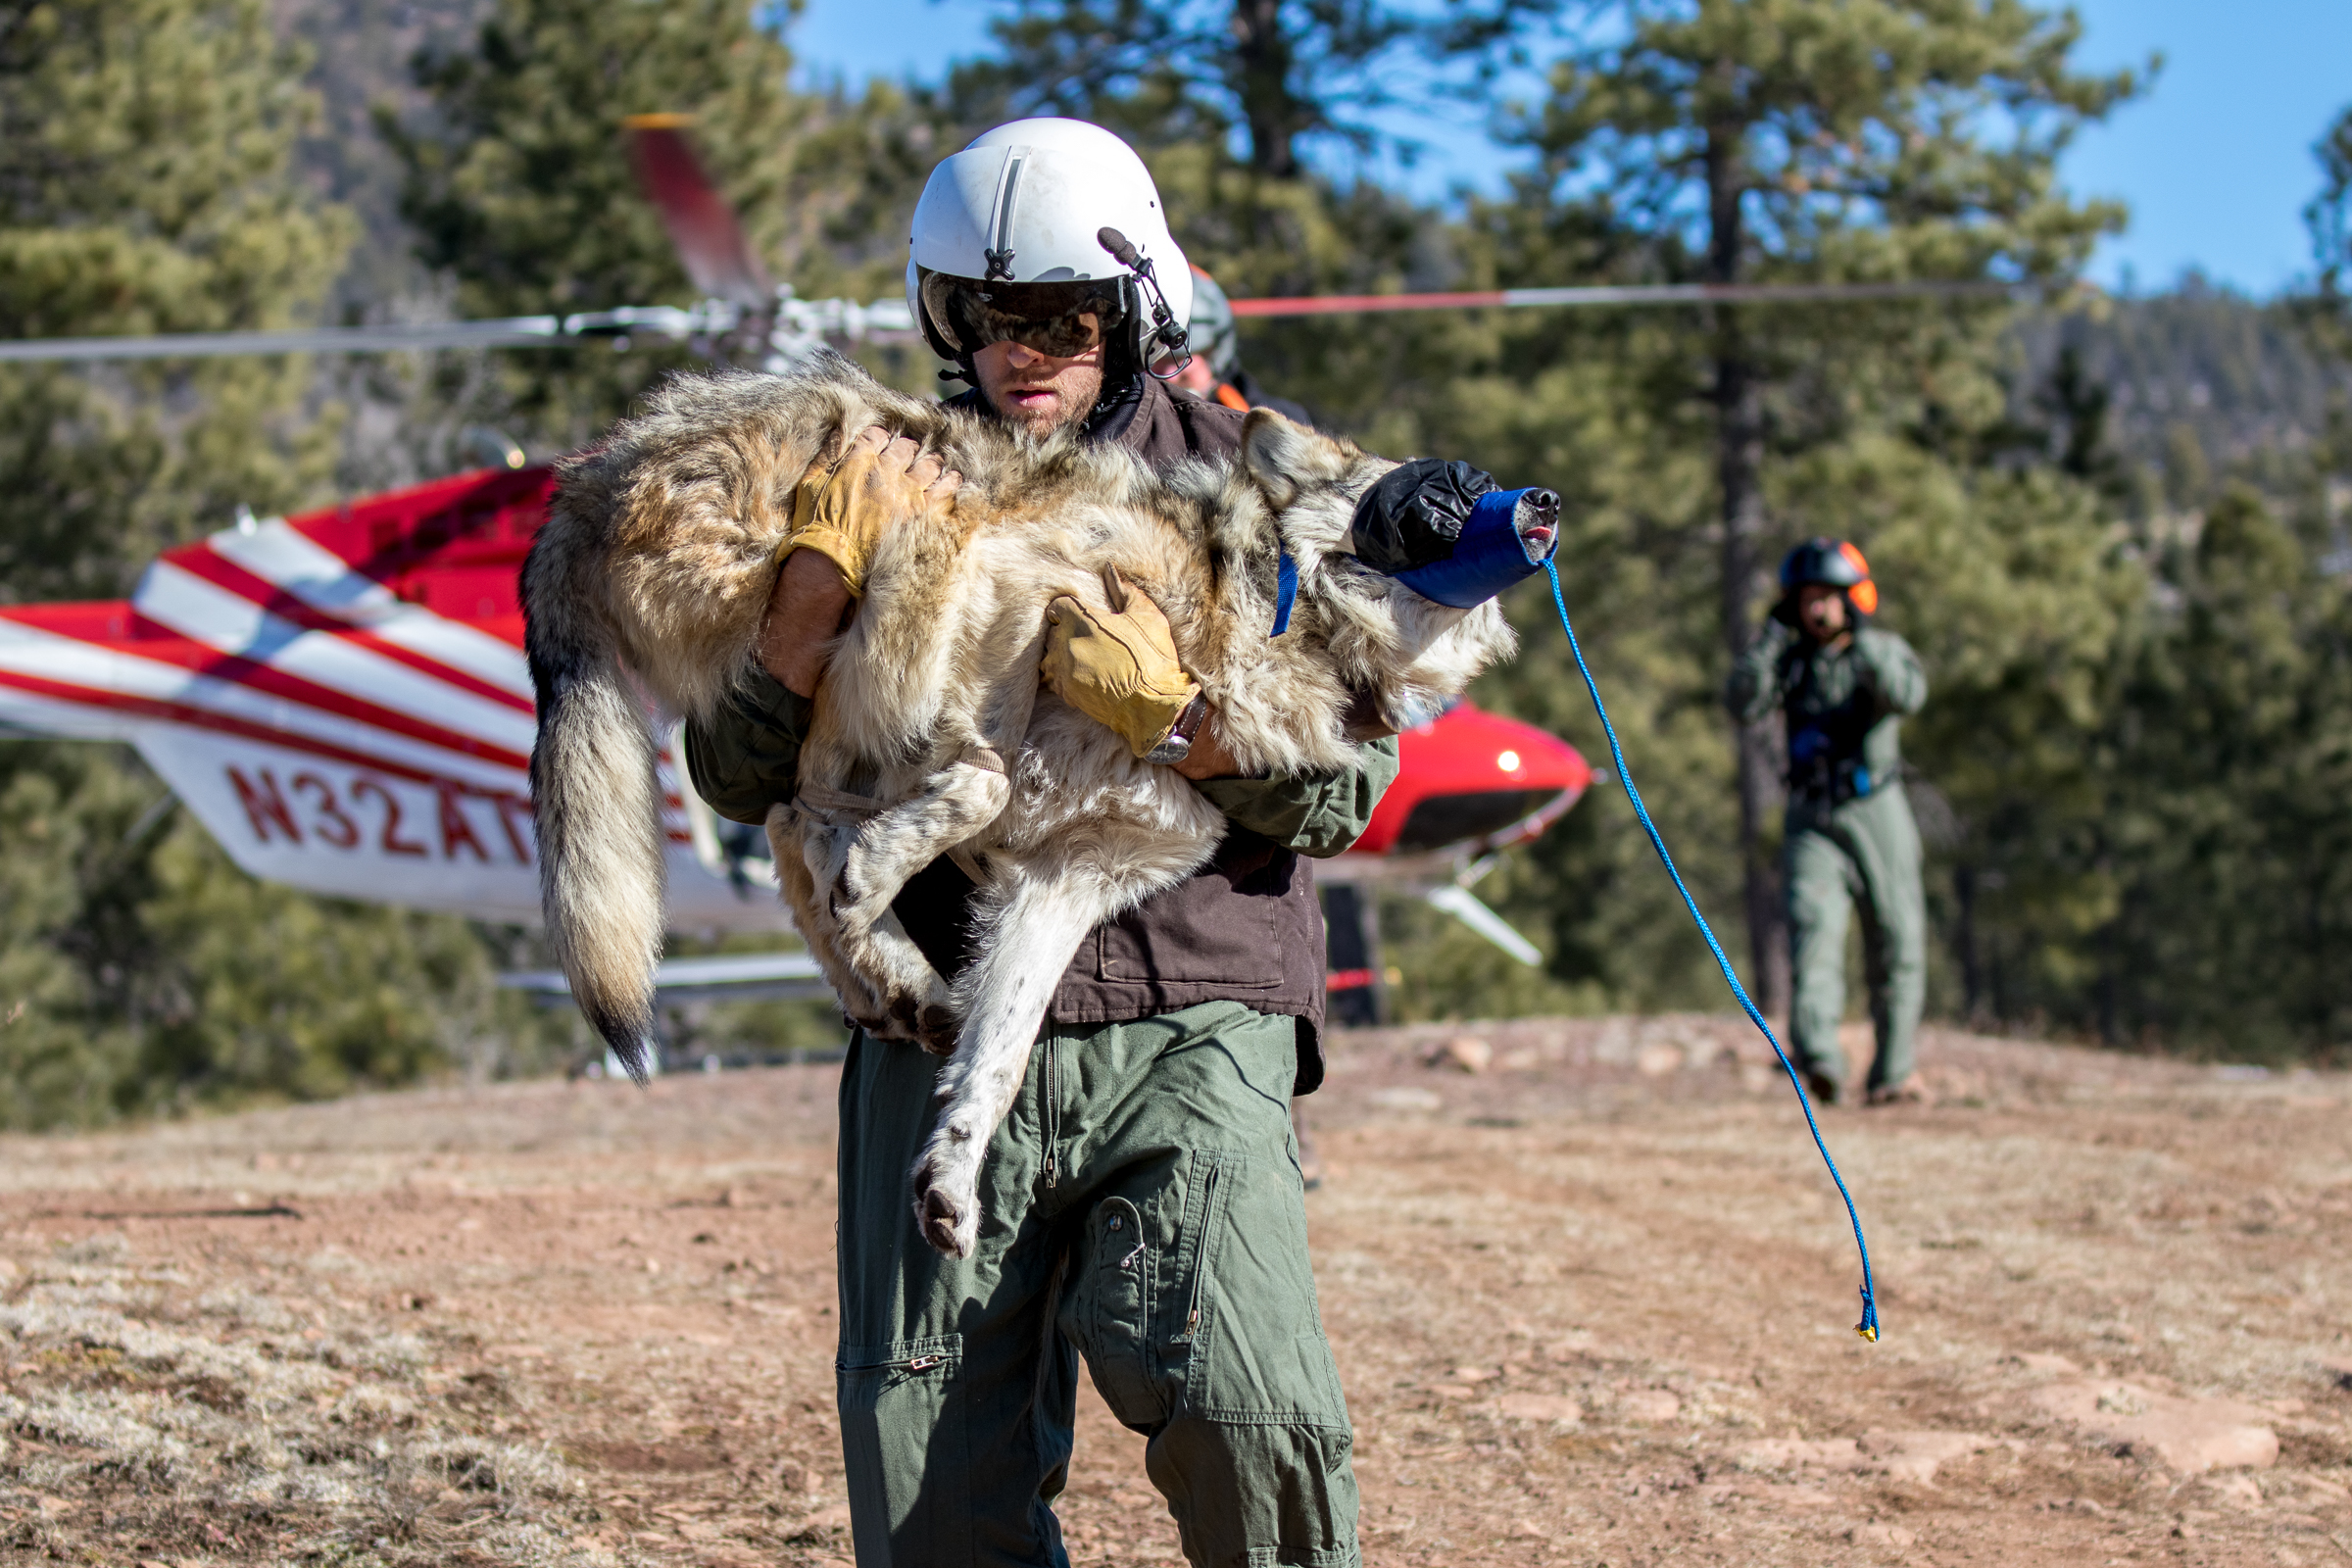 Mexican wolf #M1296 is carried from a helicopter to the Alpine, AZ field office to be processed by biologists before being returned to the location where he was captured. Photograph by Christina Selby